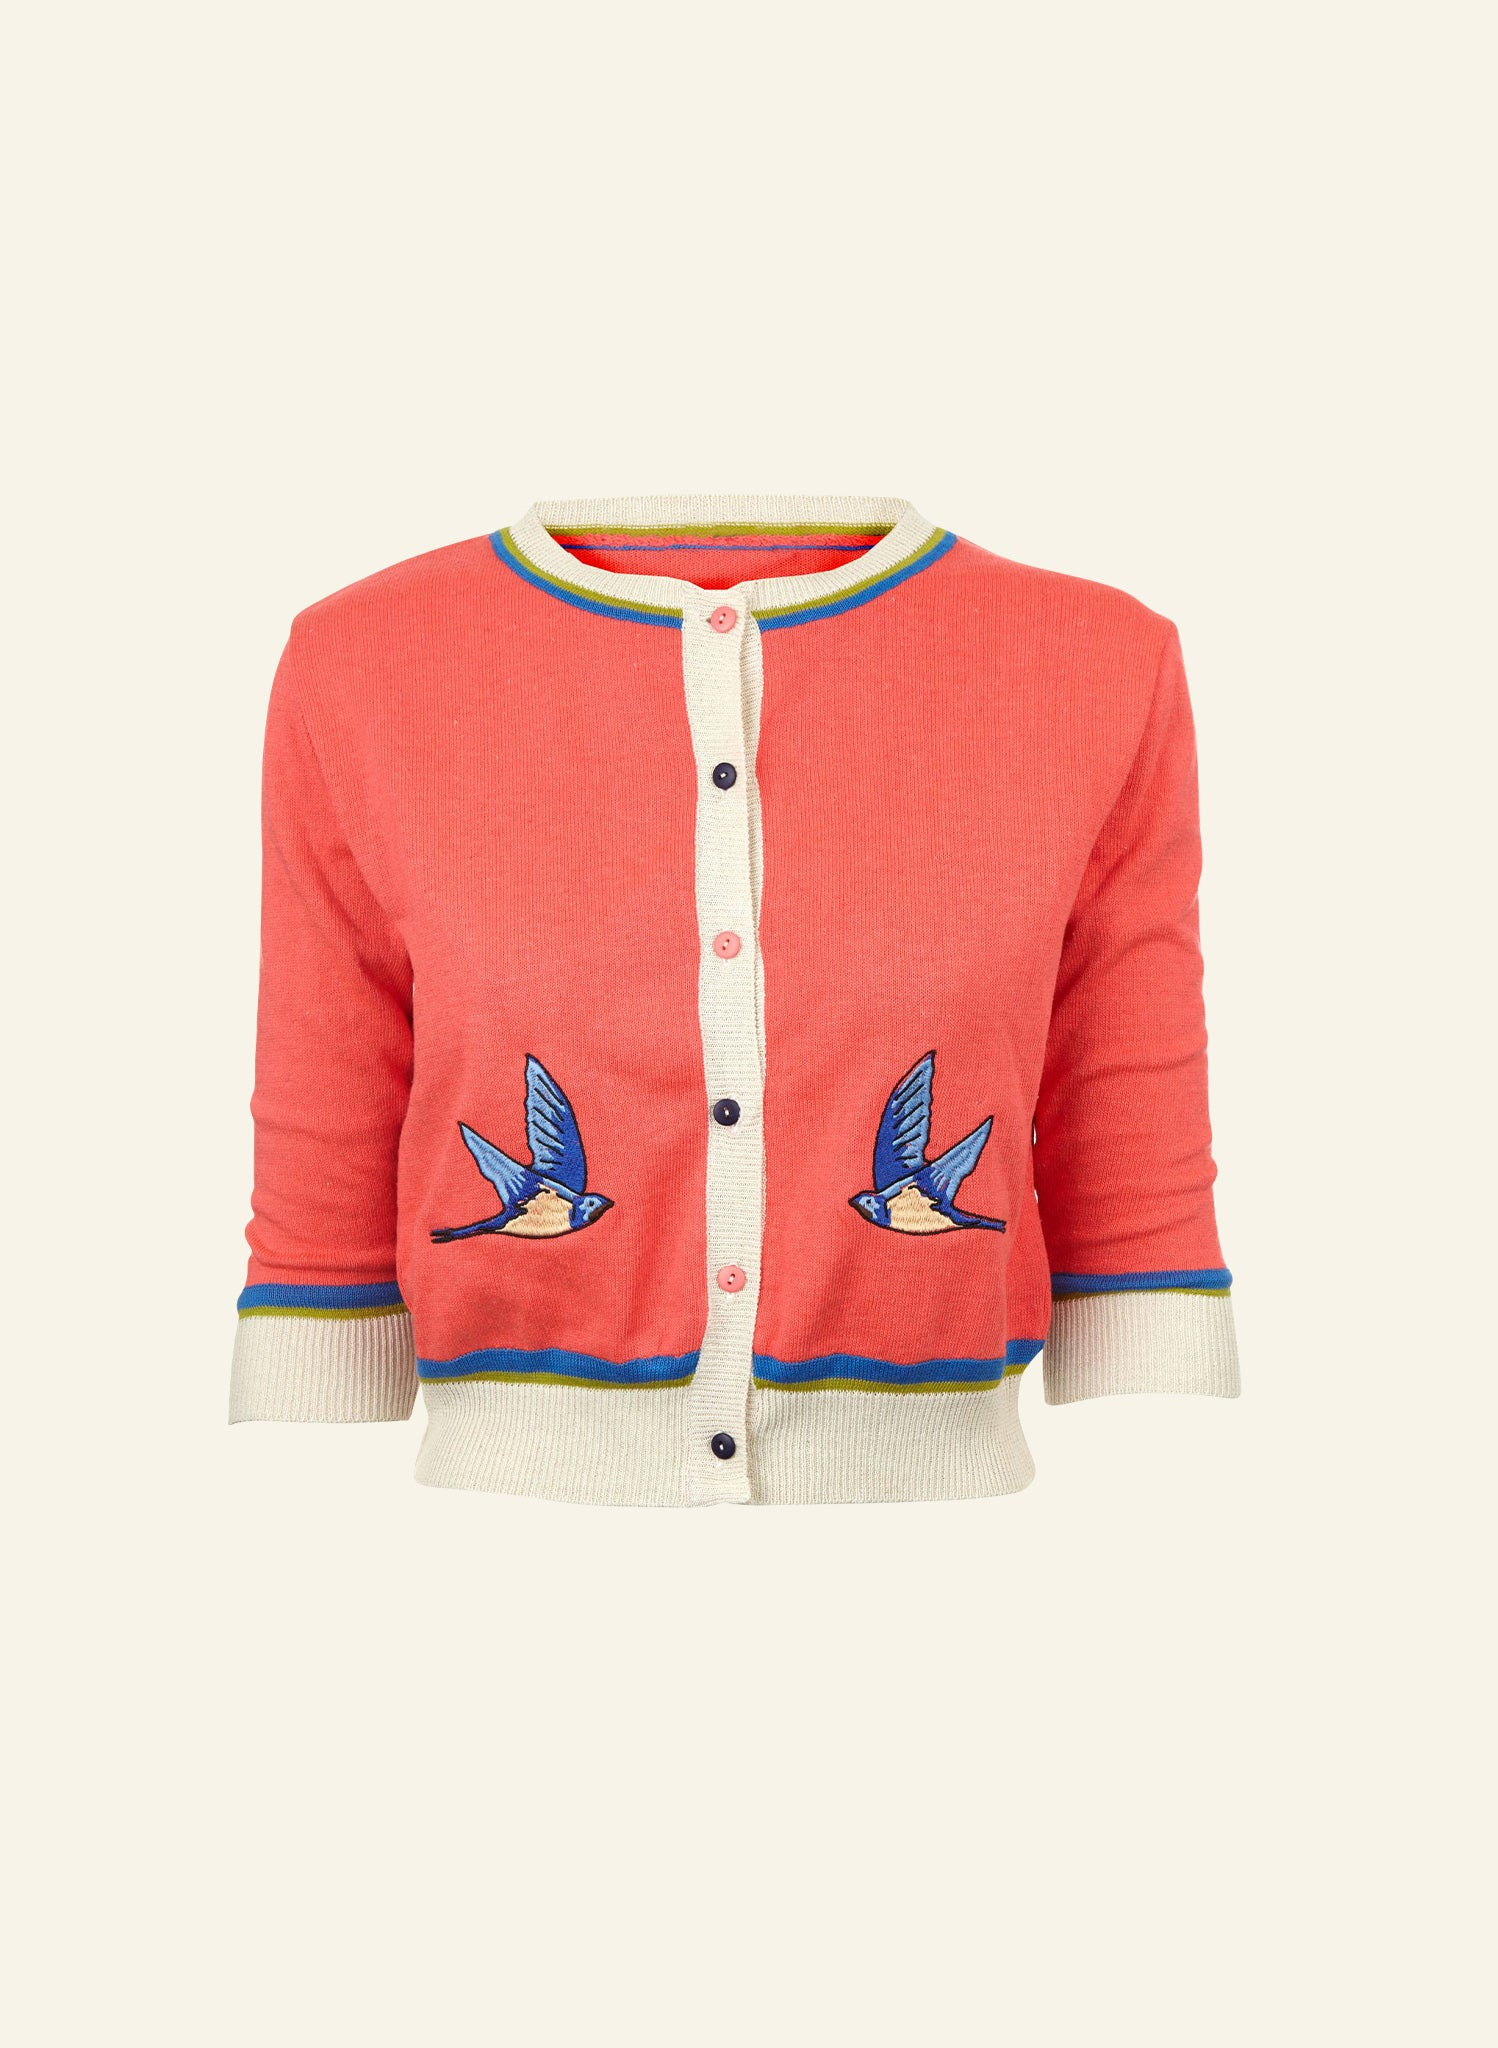 Vera - Hot Coral Swallows - Organic Cotton Cardigan